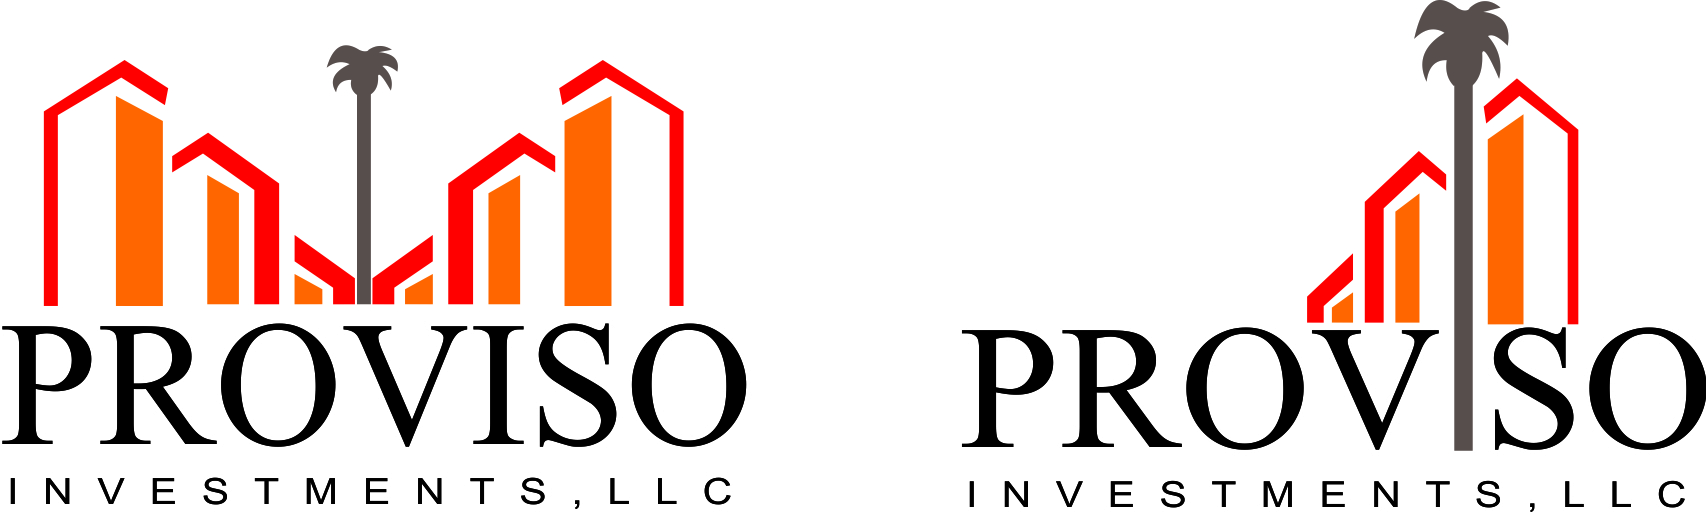 Logo Design by Bineesh Ck Bineesh - Entry No. 14 in the Logo Design Contest New Logo Design for PROVISO INVESTMENTS,LLC.